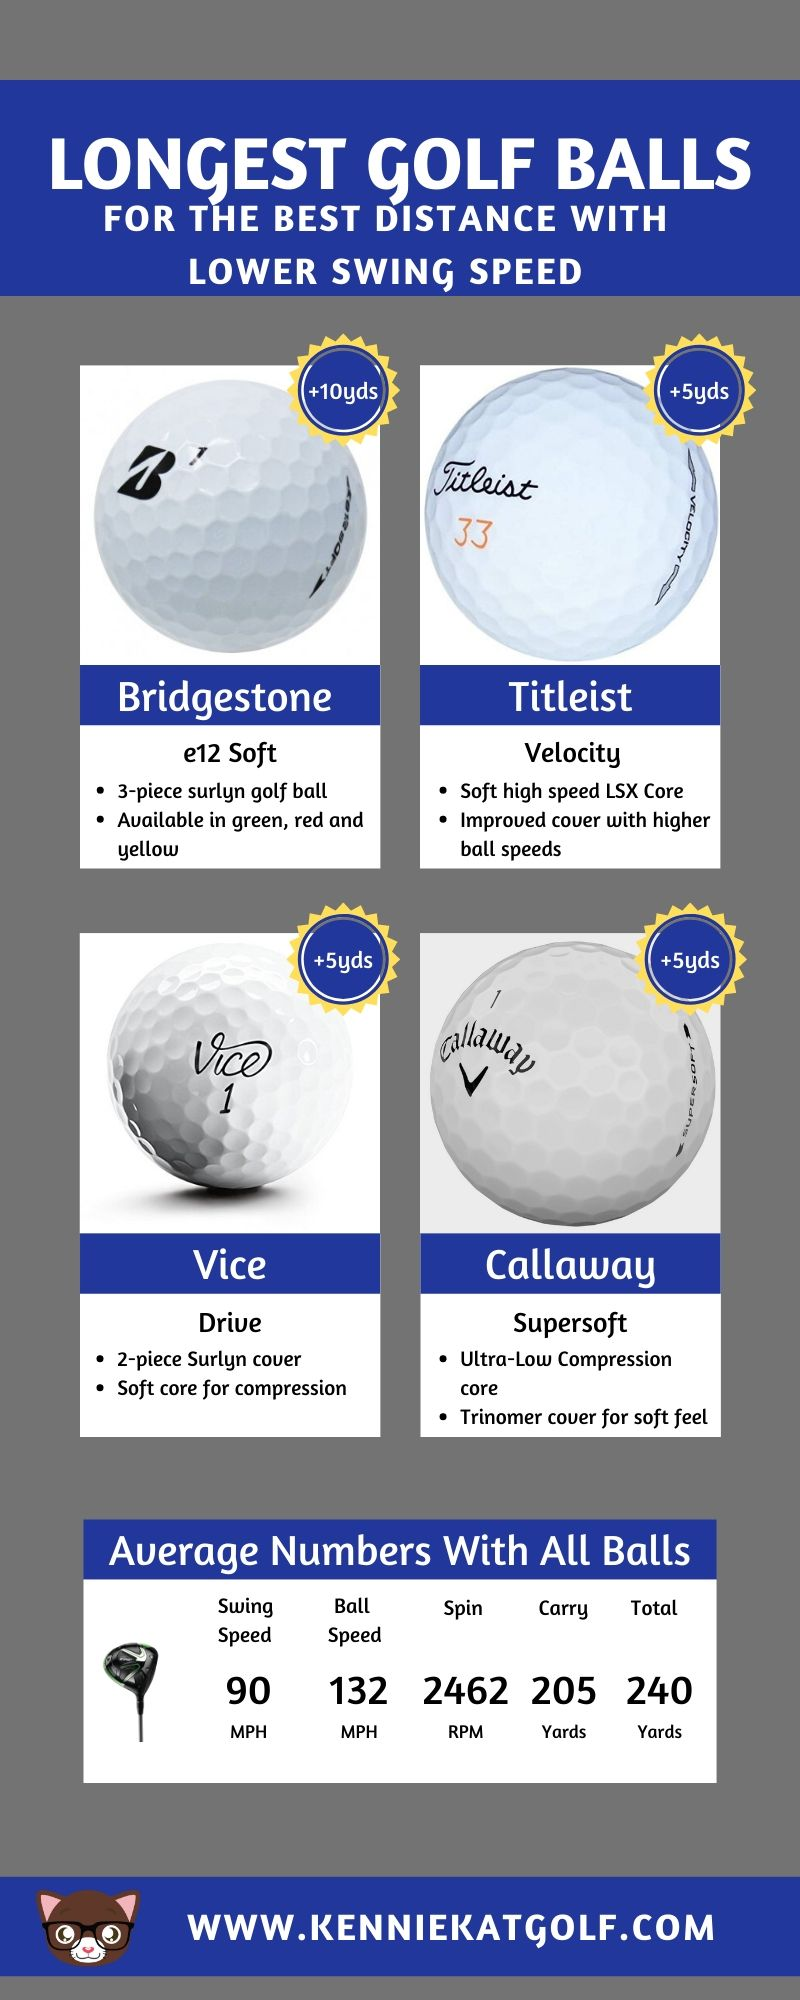 The Longest Golf Balls For The Best Distance